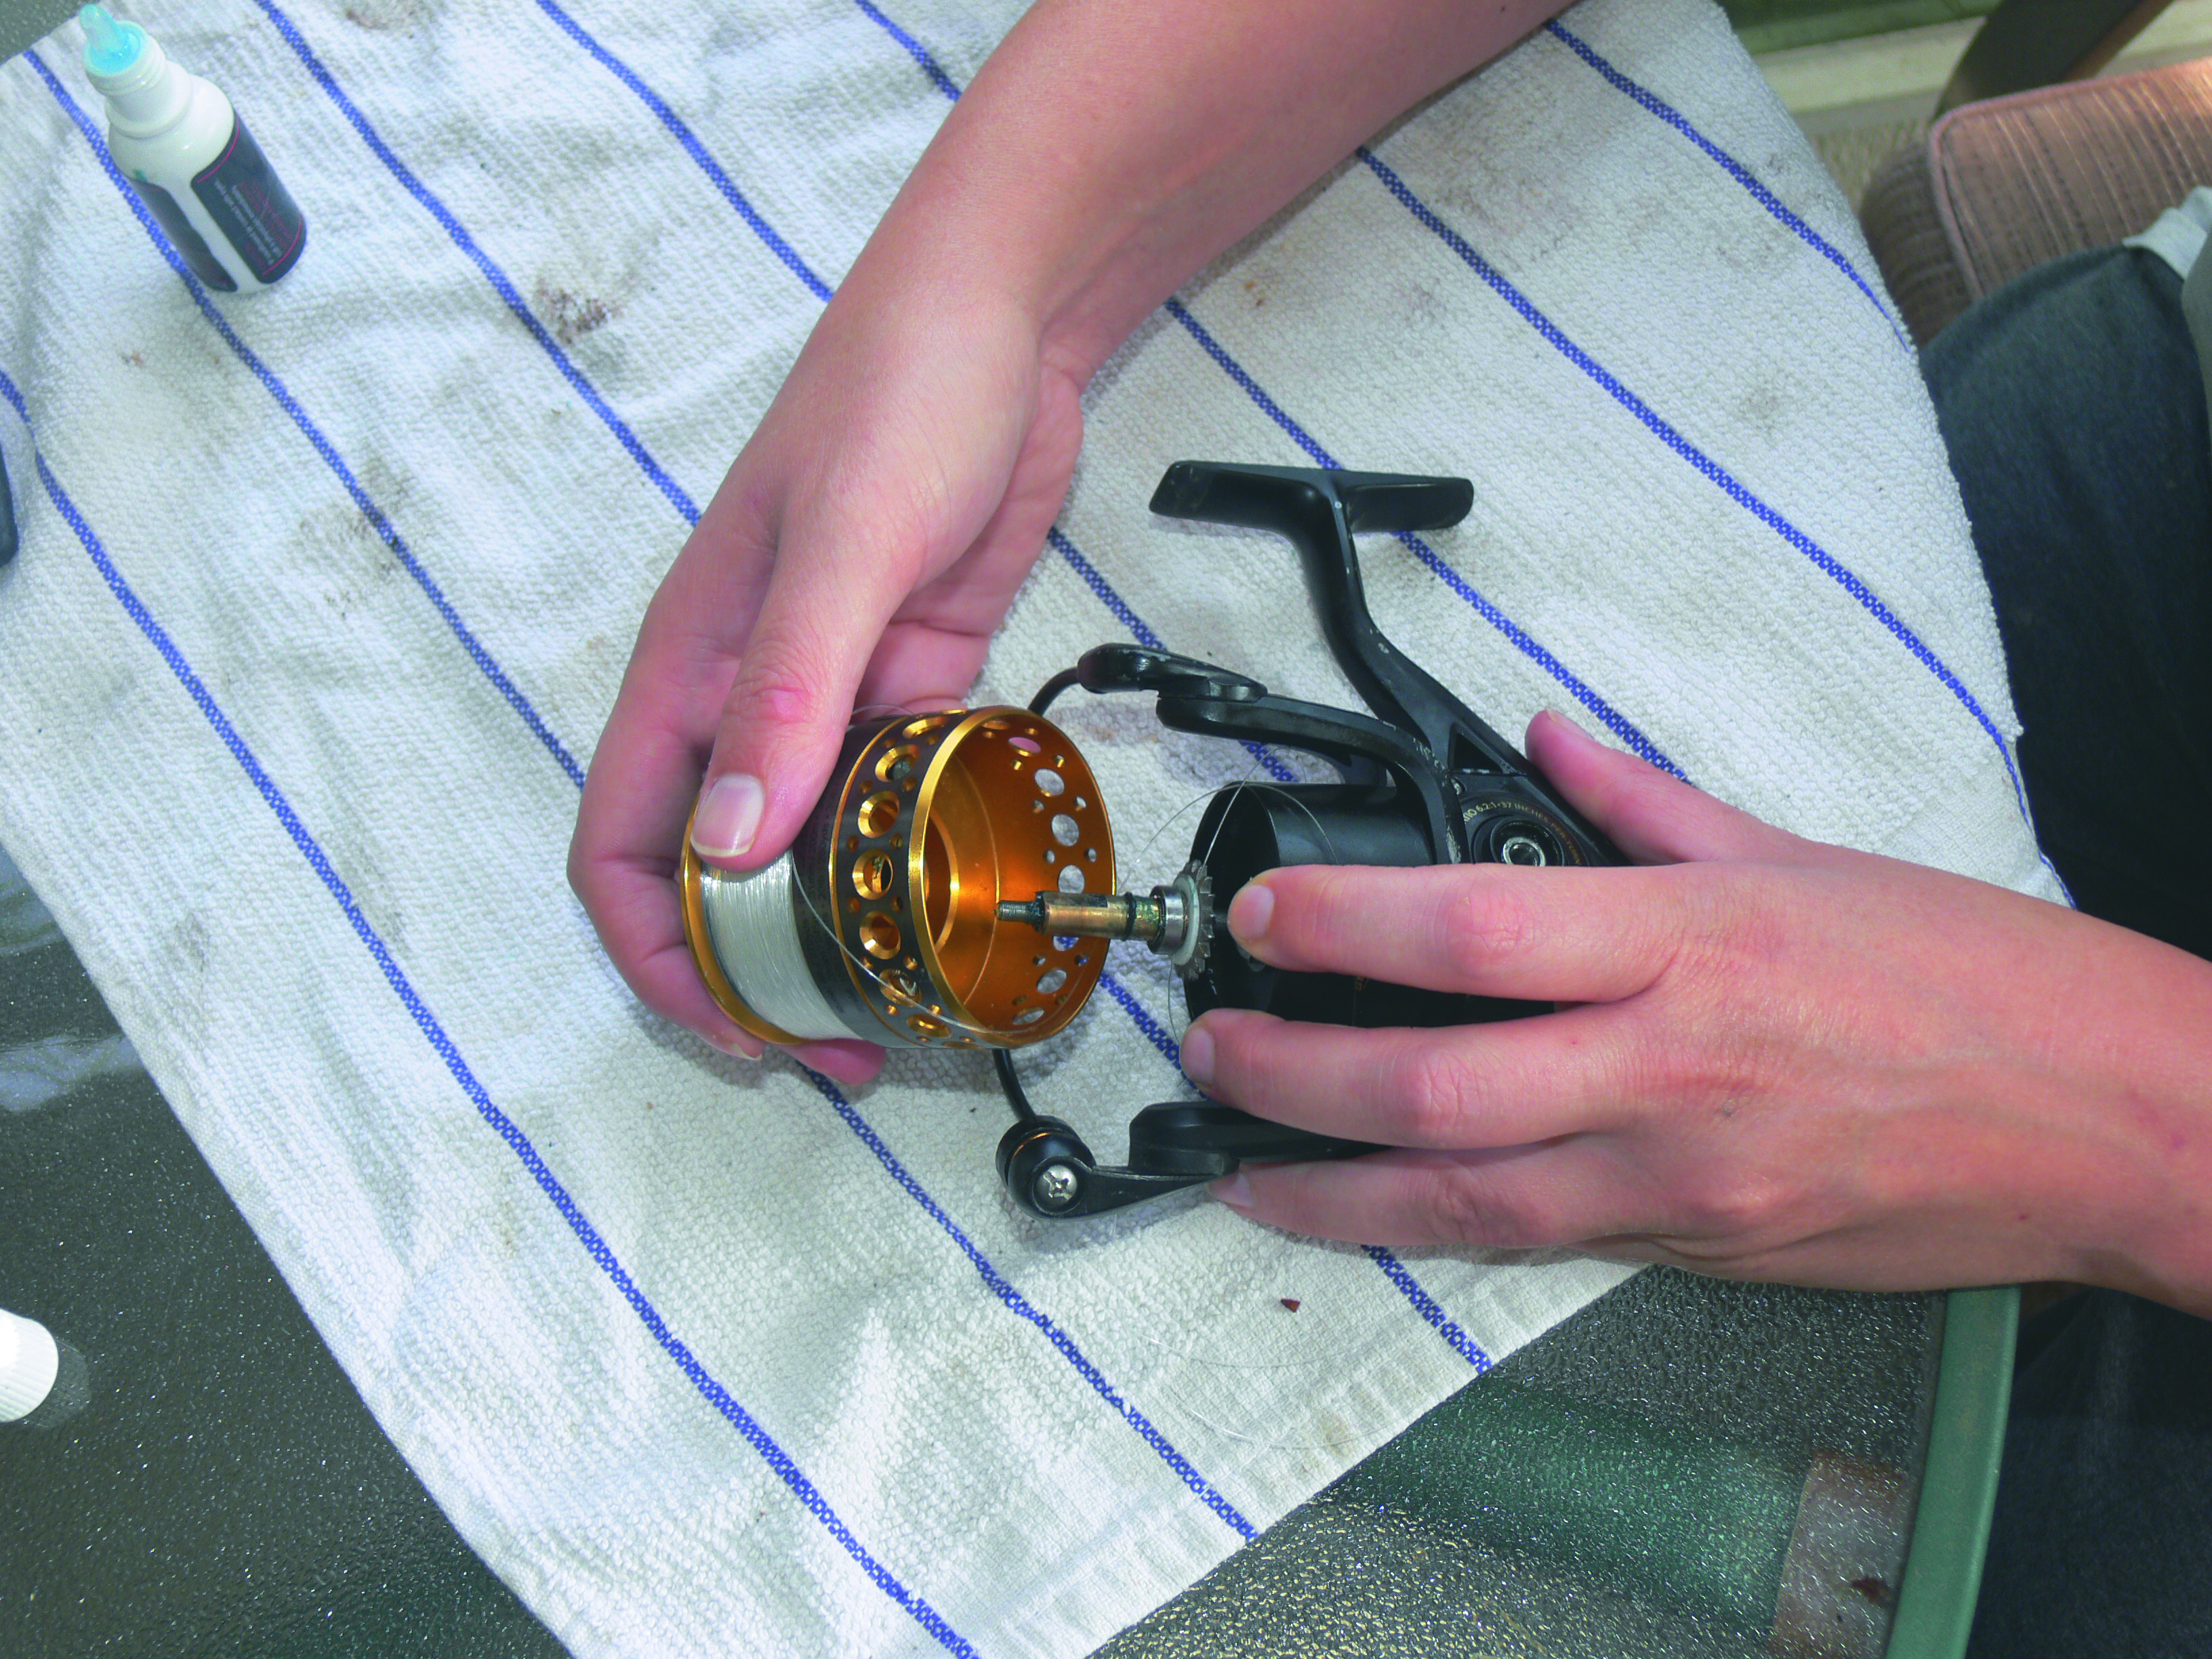 Step eight to maintain your spinning reel